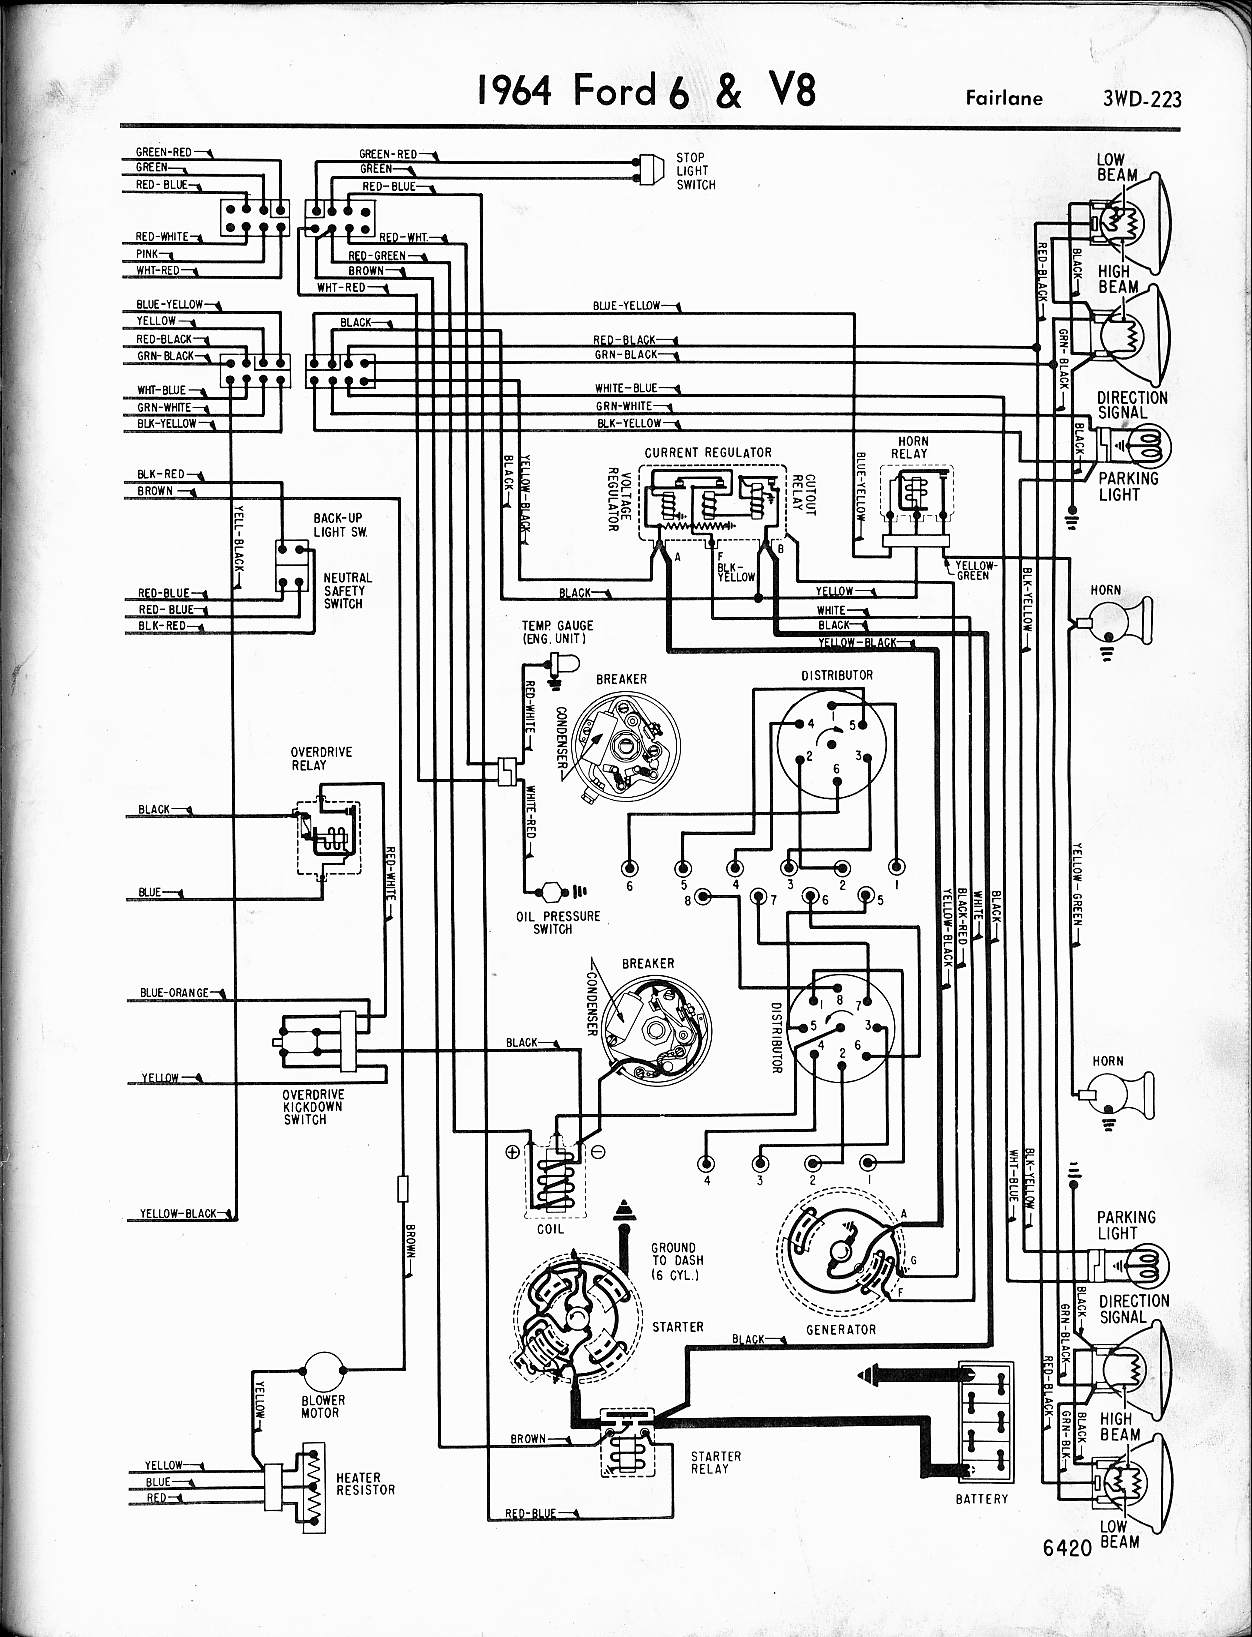 heater wiring diagram 1968 ford galaxie just wiring data rh ag skiphire co uk Ford Pinto Ignition Wiring Diagram 1969 Ford Fairlane Wiring-Diagram